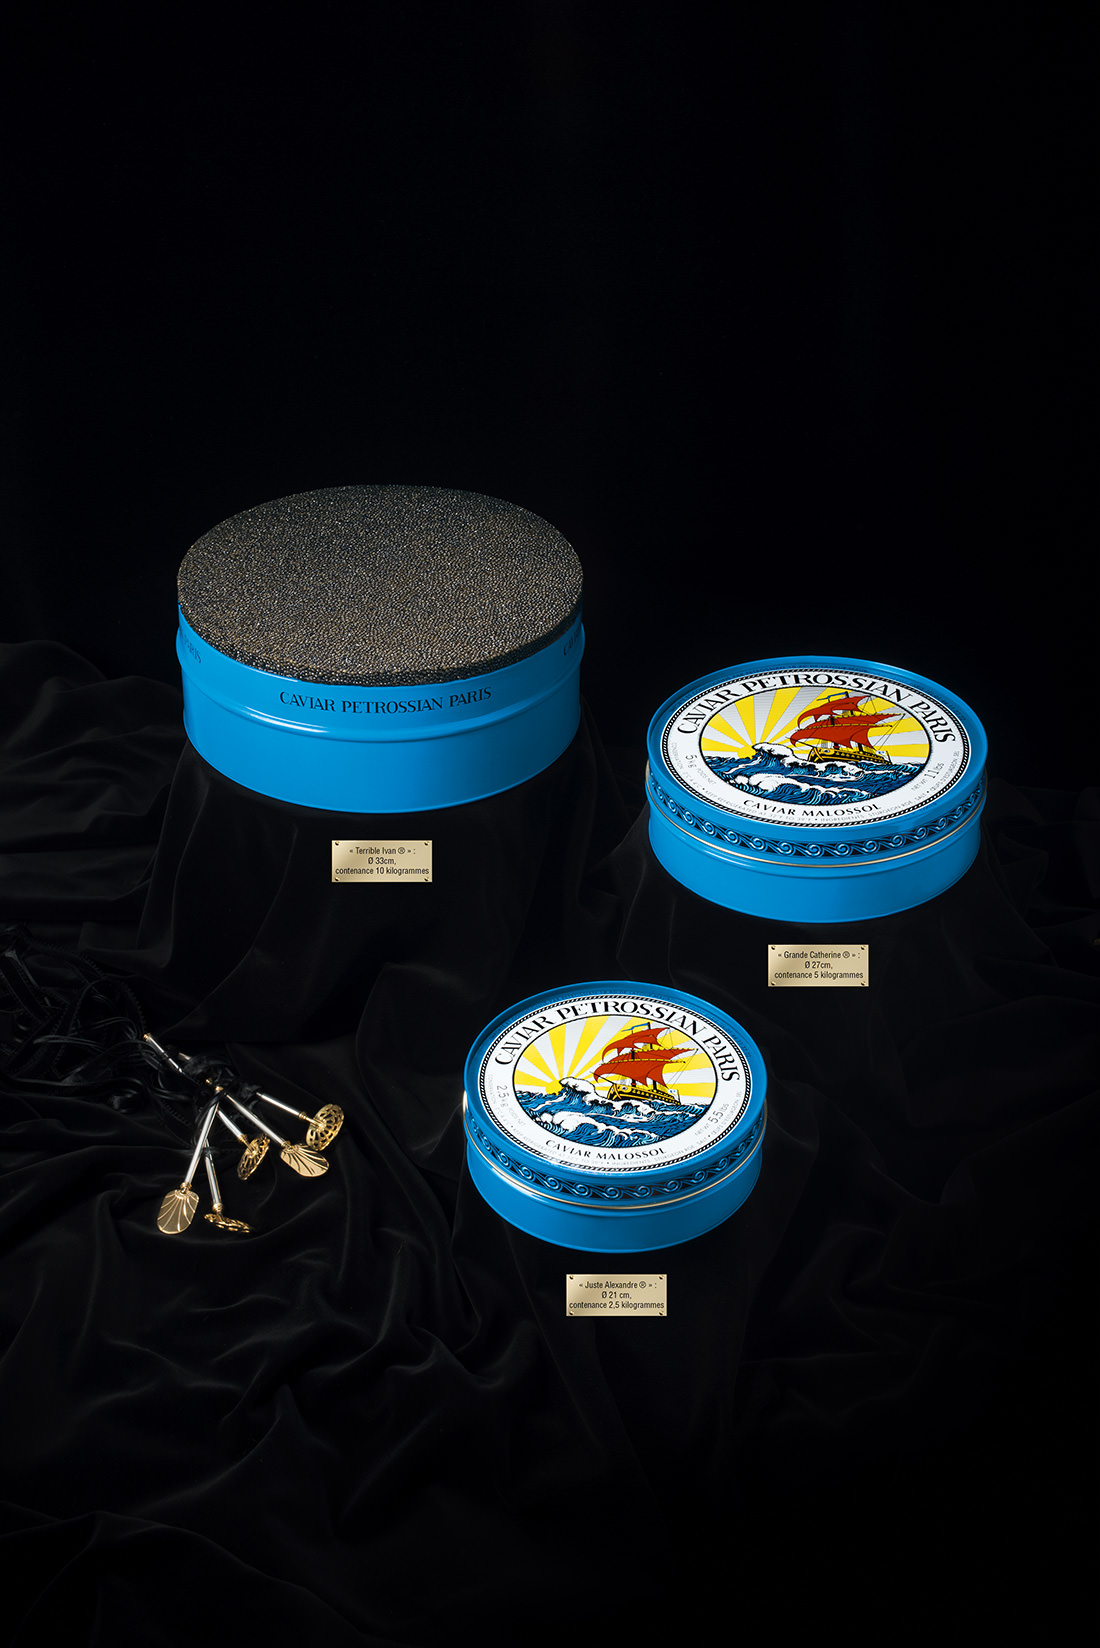 Largest Tin Of Caviar In The World